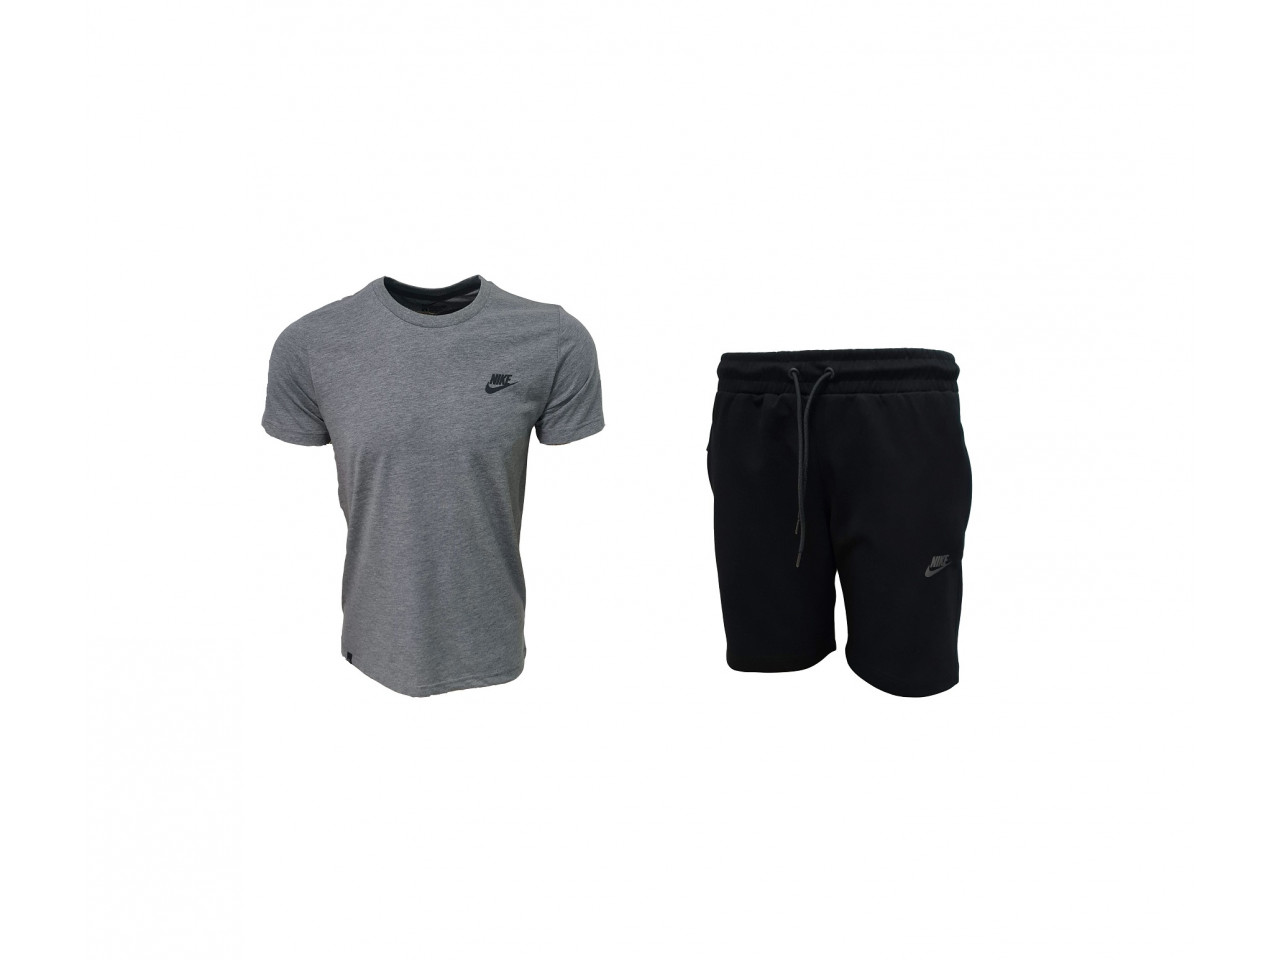 Nike INC. Shorts+ T-shirt Dark Grey & Black